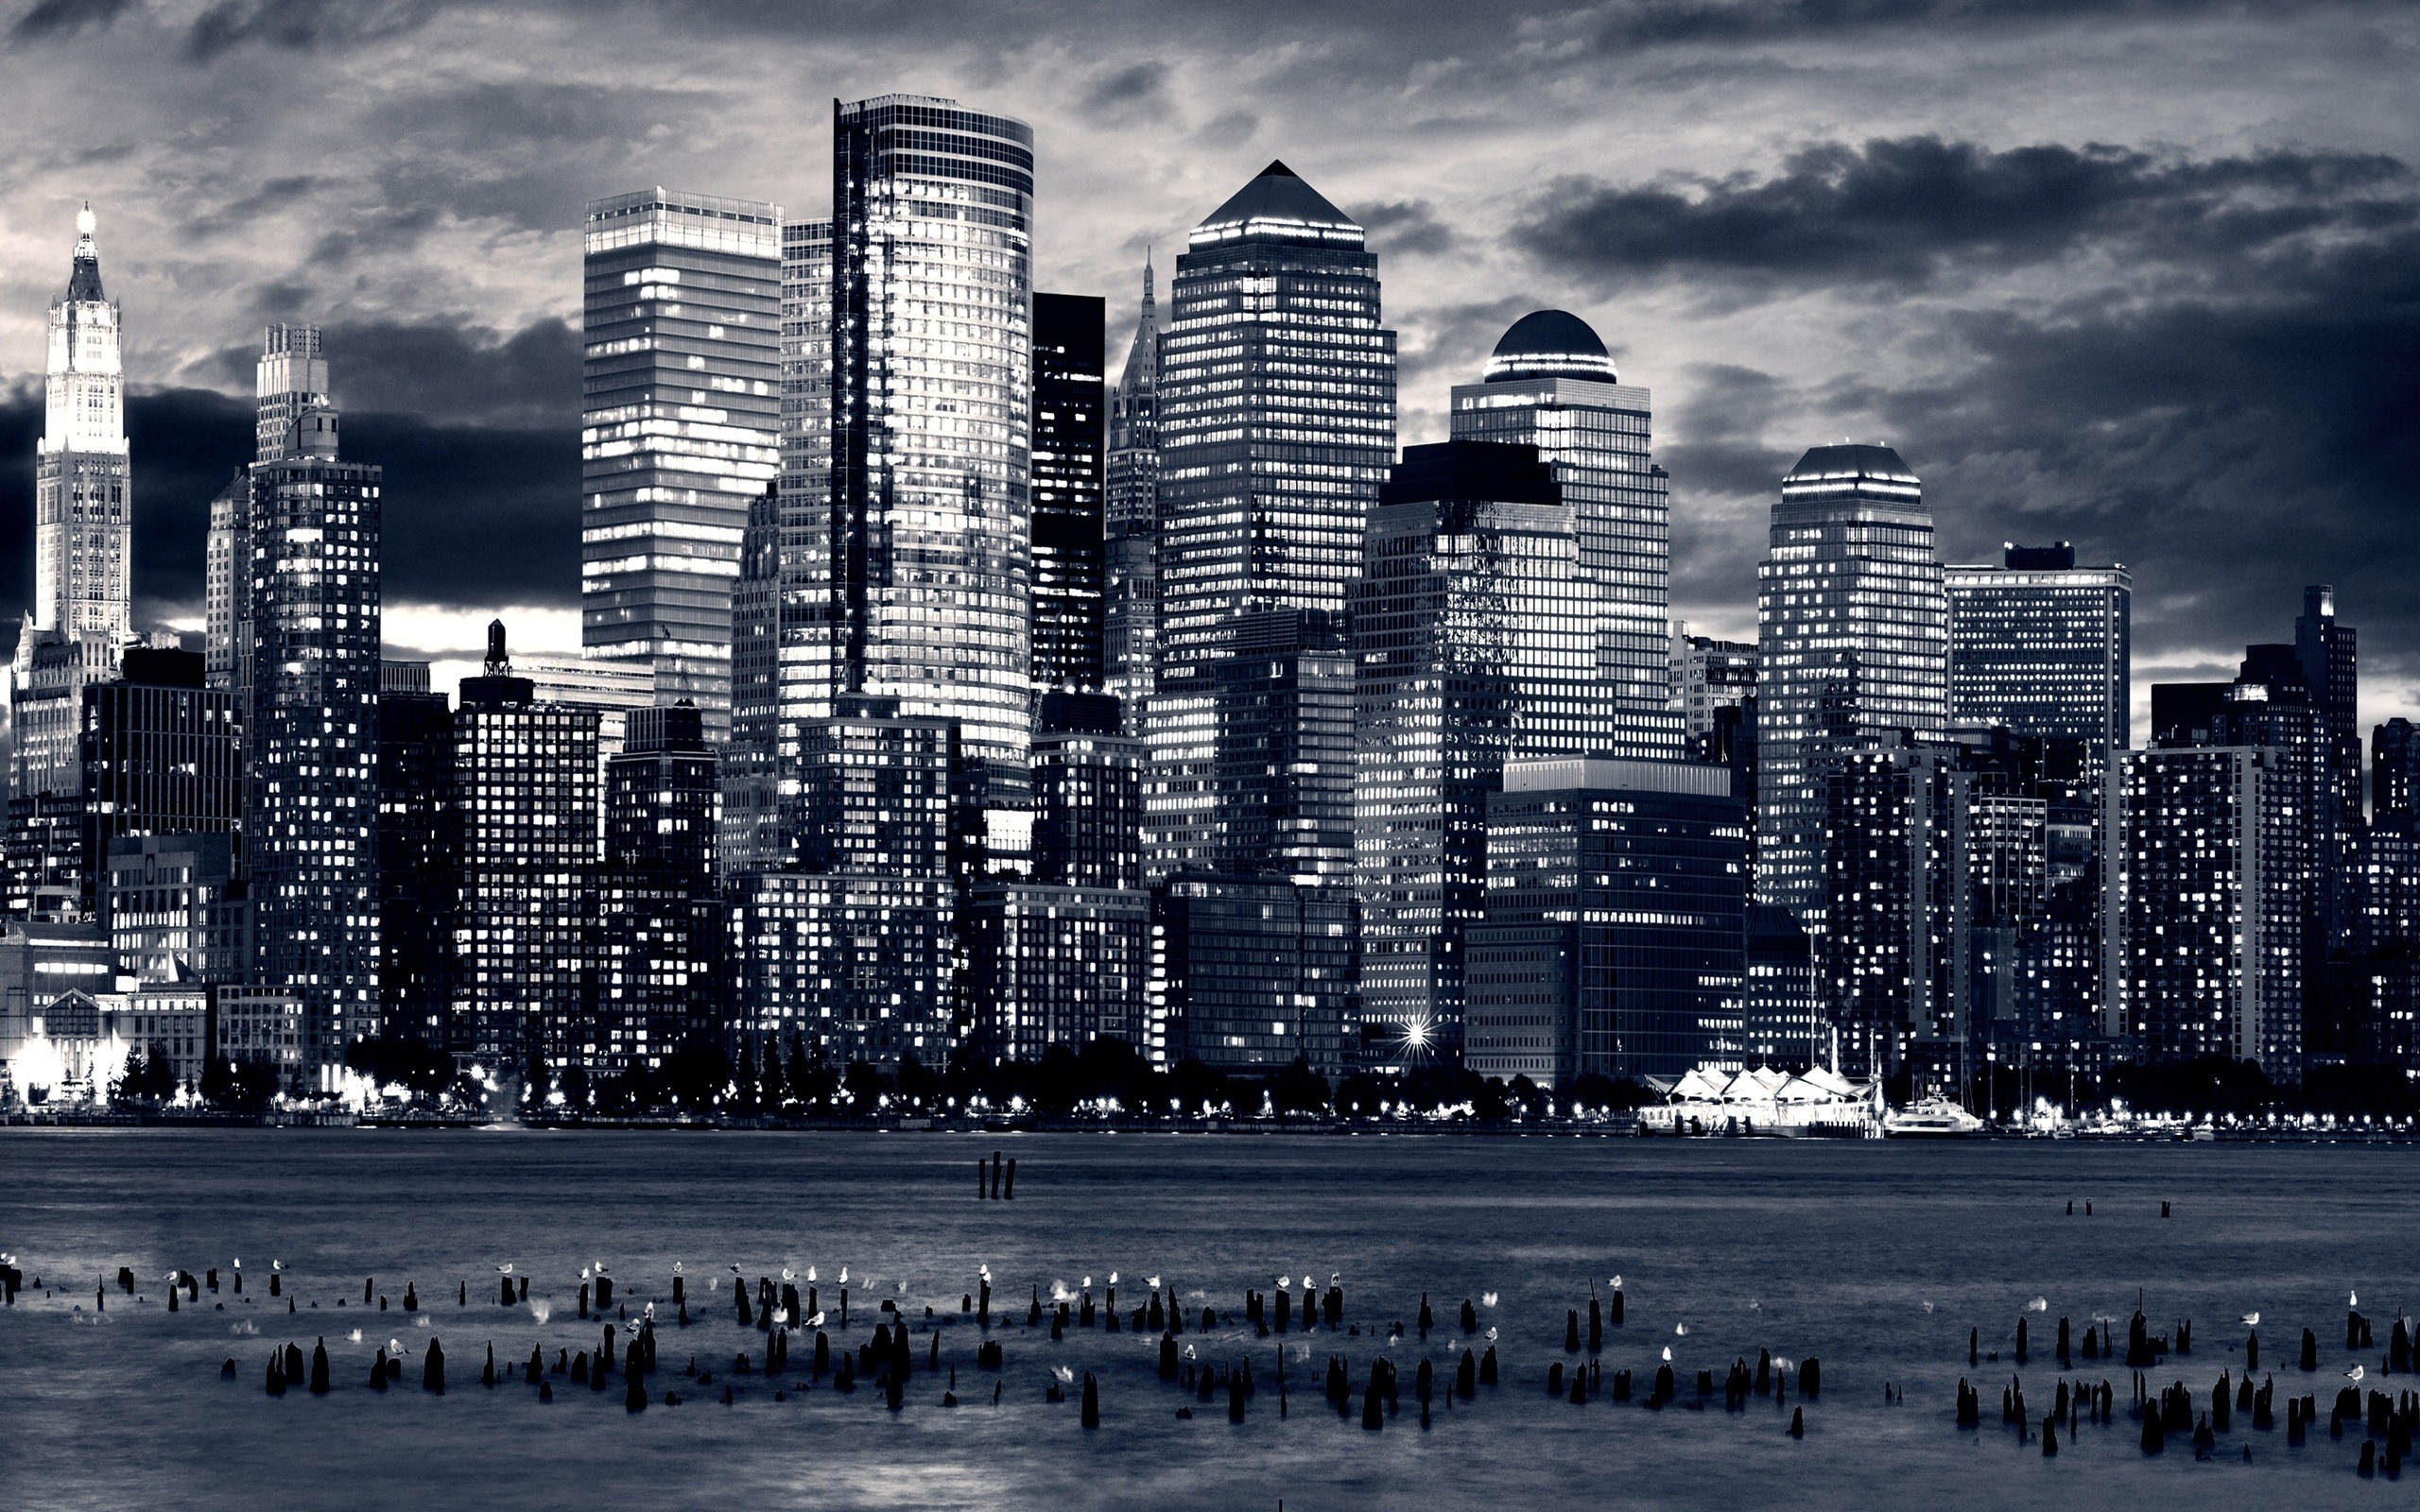 2560x1600 0 City Tumblr Wallpapers Wide Collection of Black And White Skyline  Wallpaper on Spyder Wallpapers